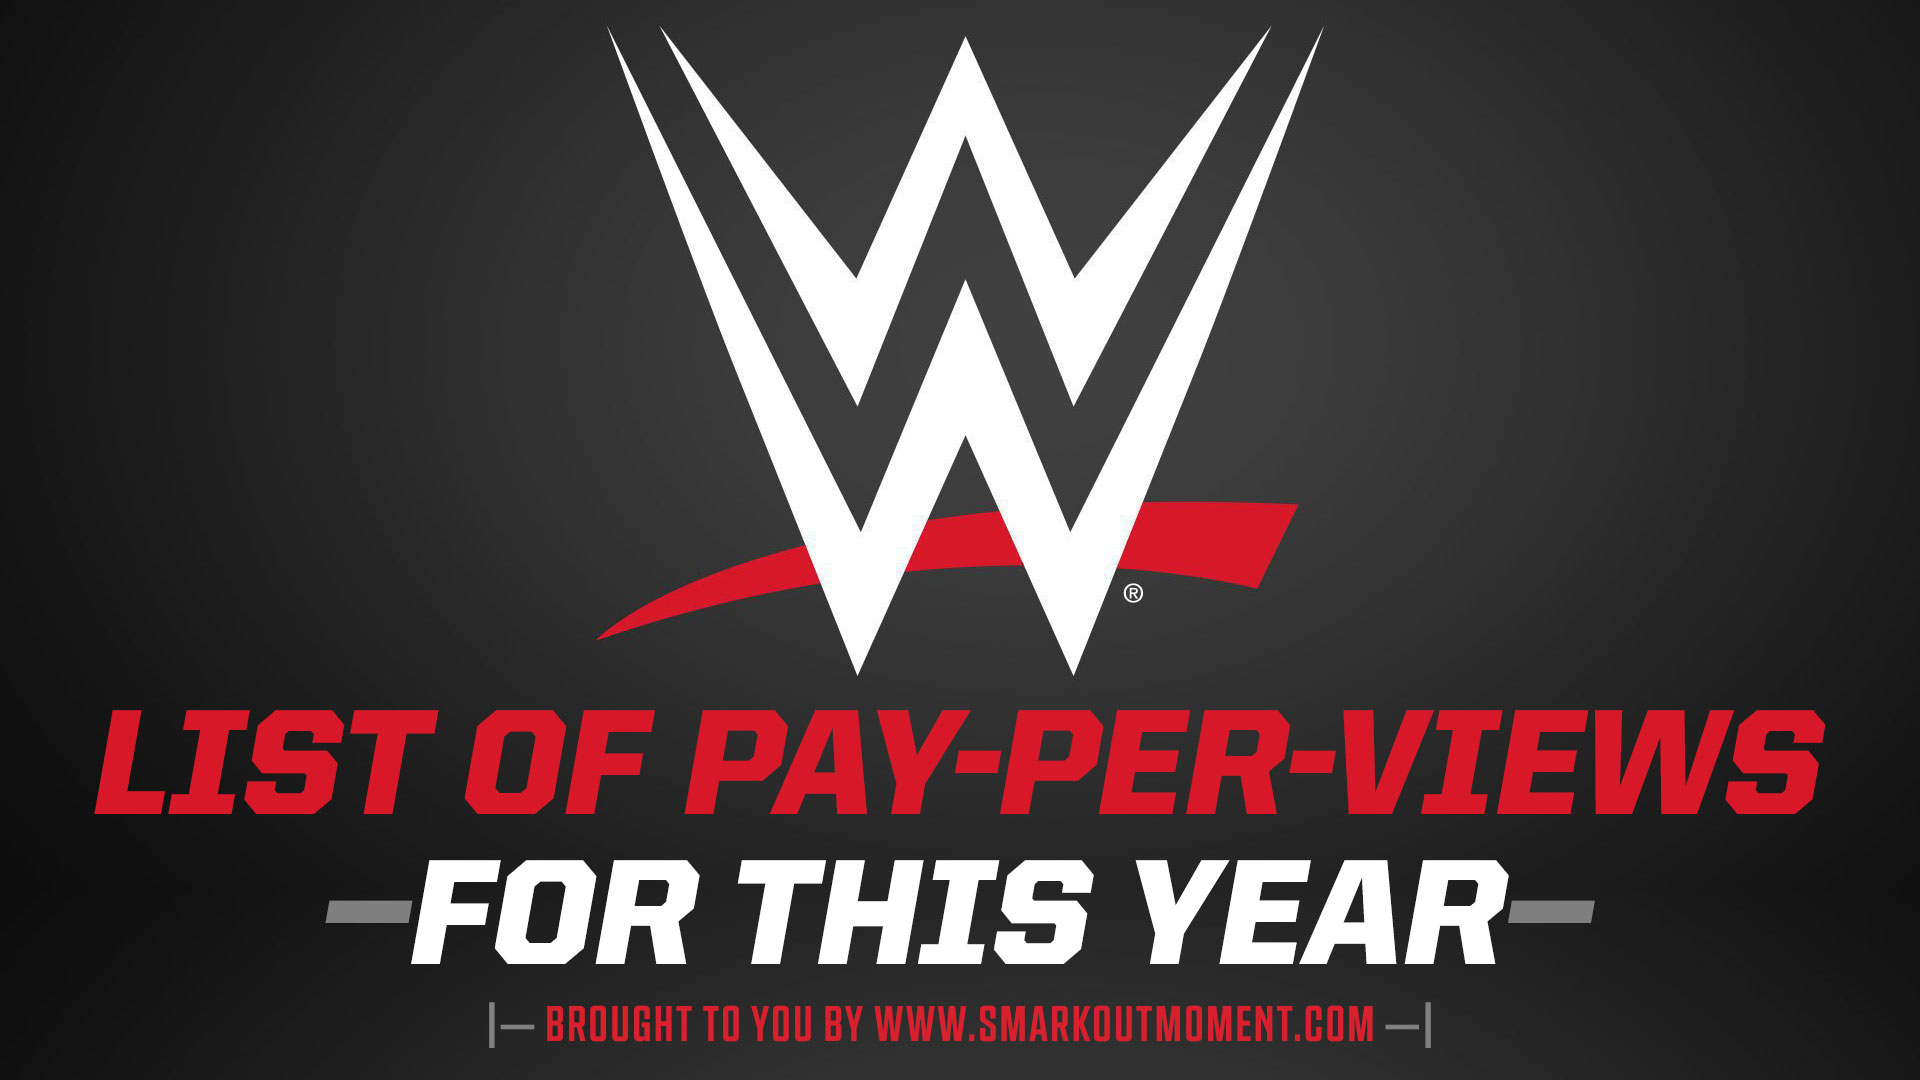 list of pay-per-view WWE ppv event shows in 2021 World Wrestling Entertainment